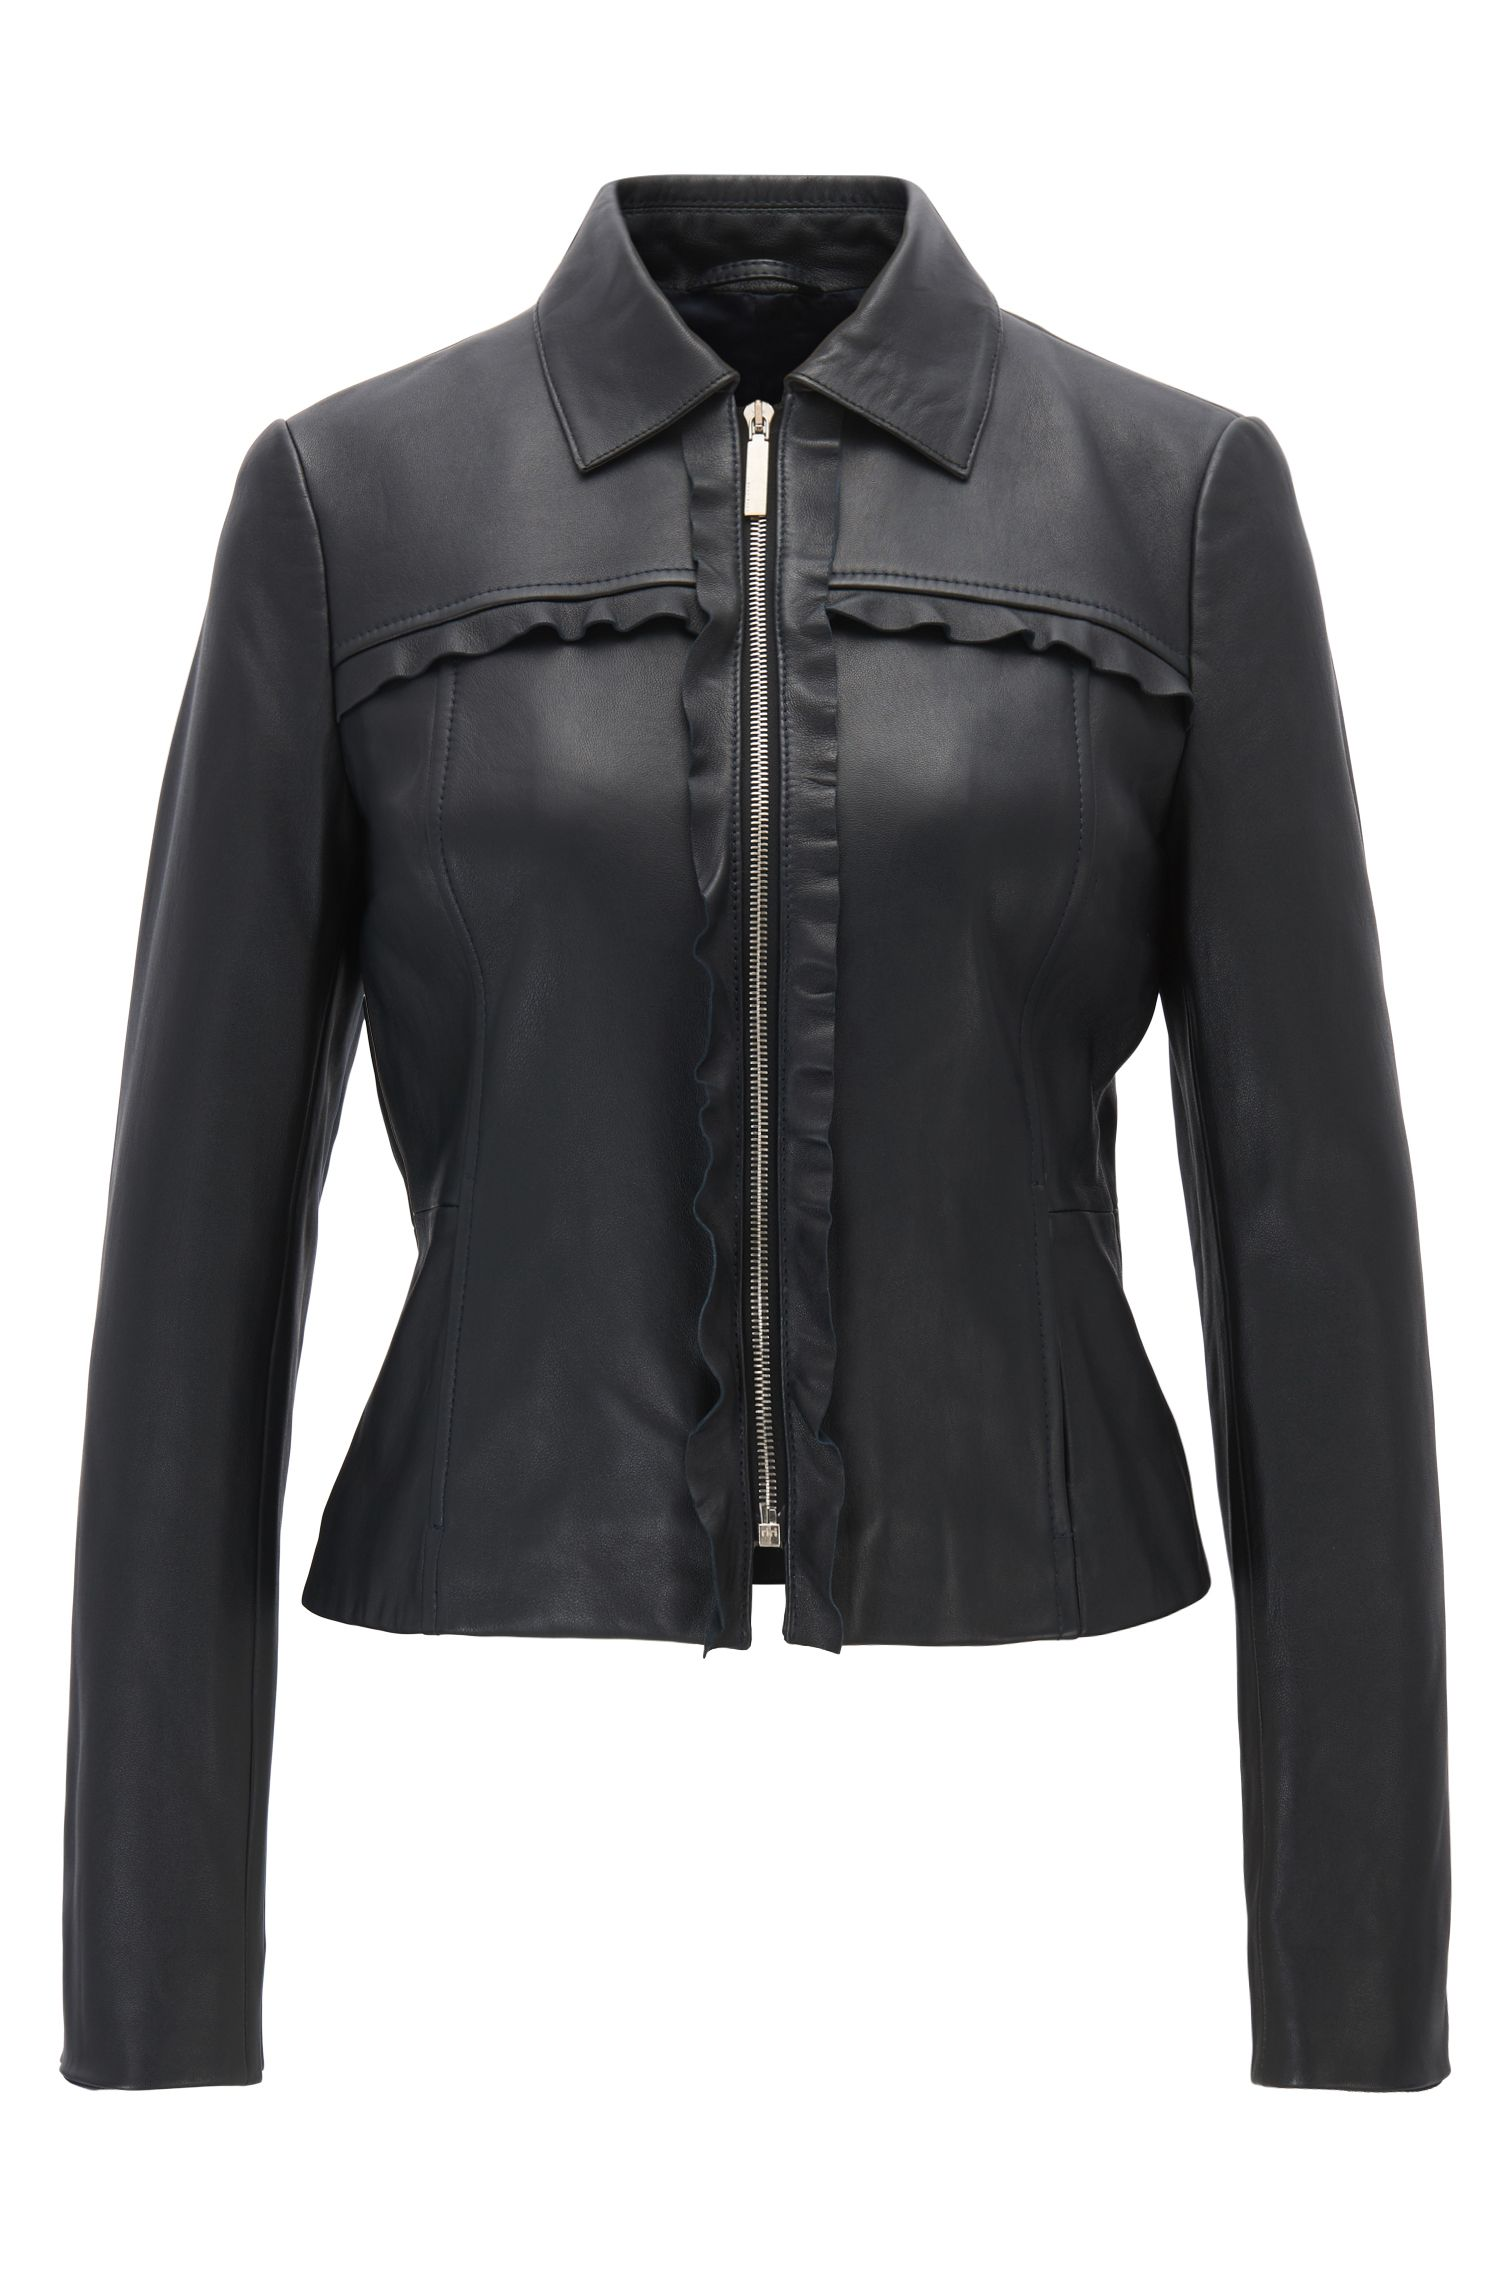 Leather biker jacket with ruffle trims